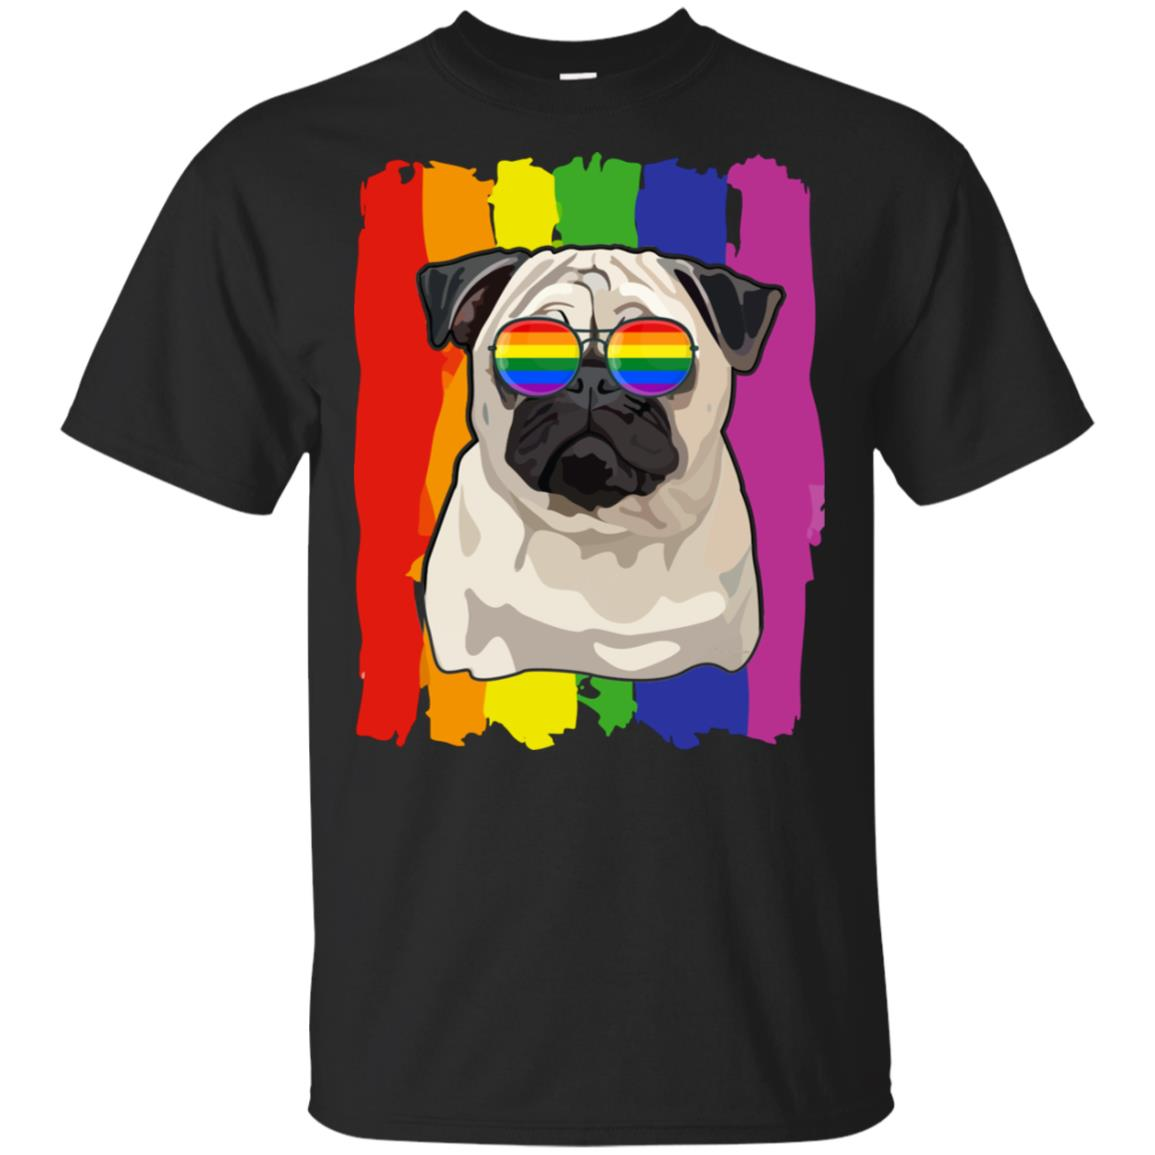 Funny Pug LGBT LGBT Pride Gifts